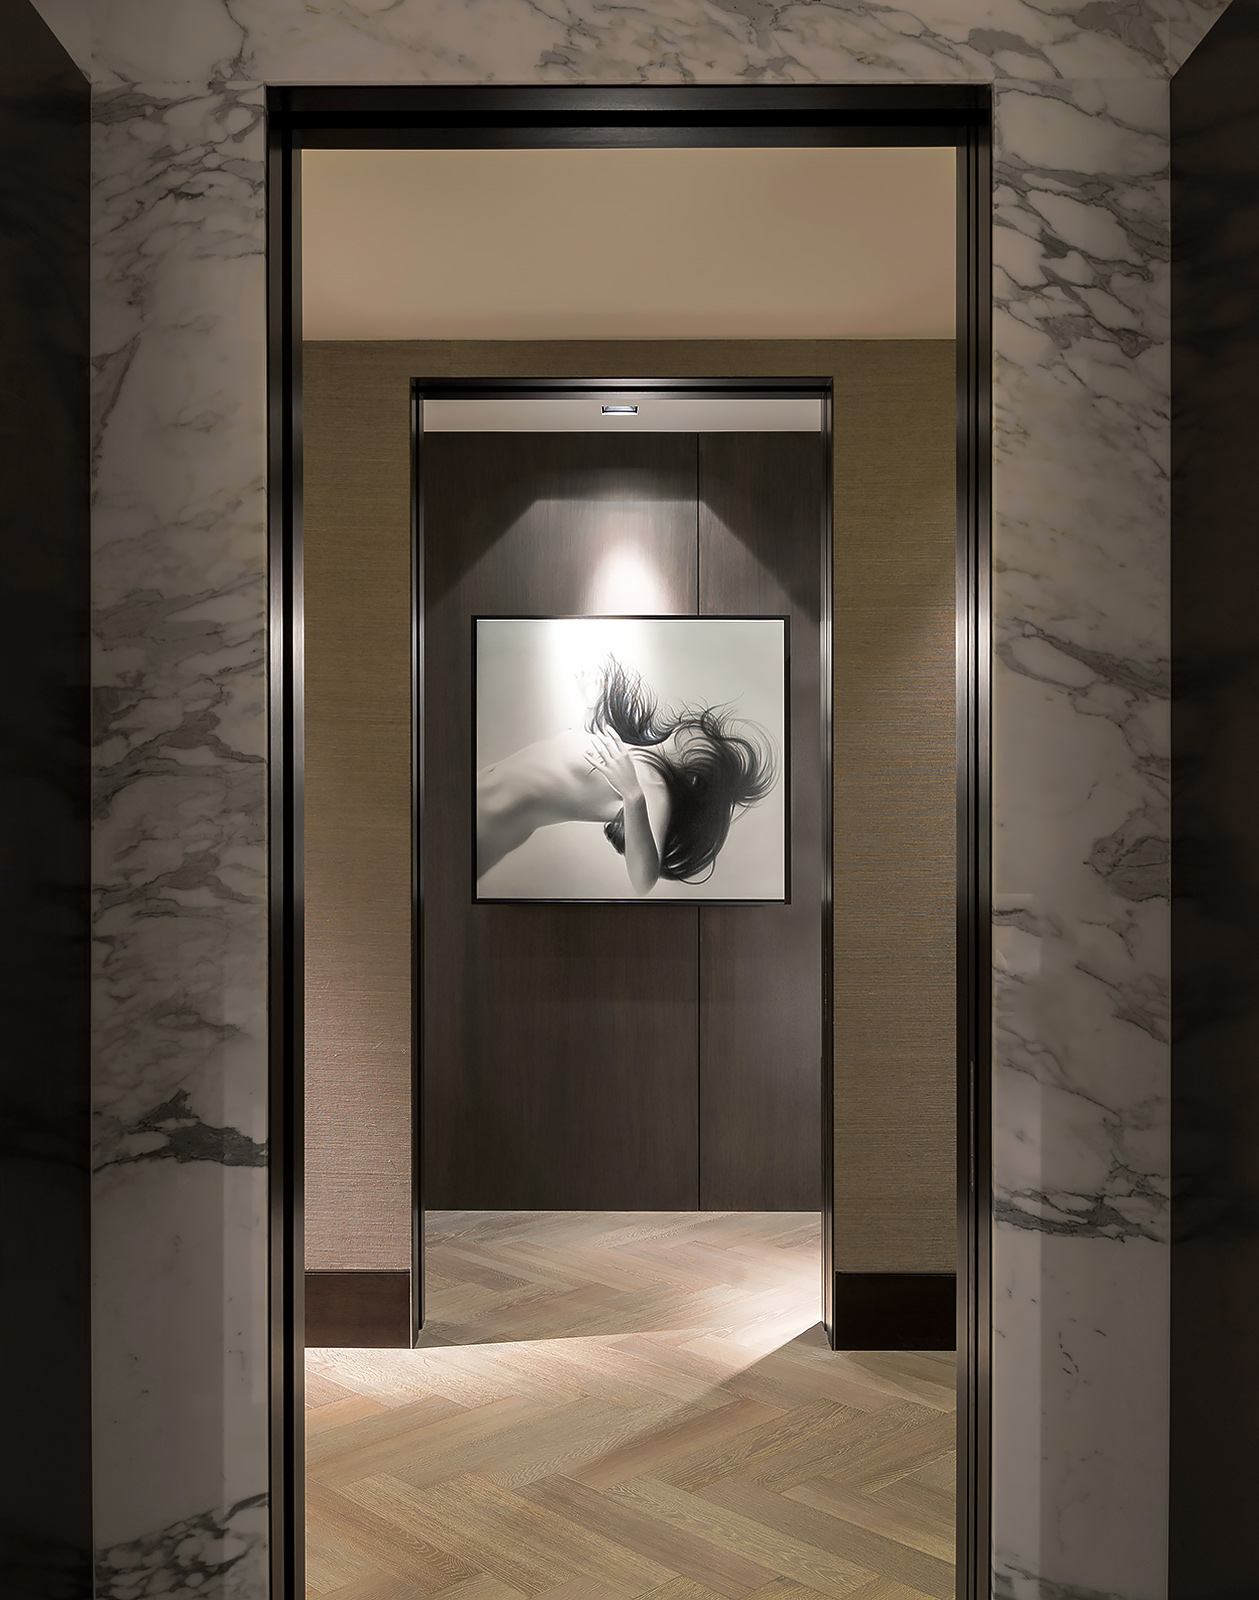 Residential-Interior-Design-Doorway-Art